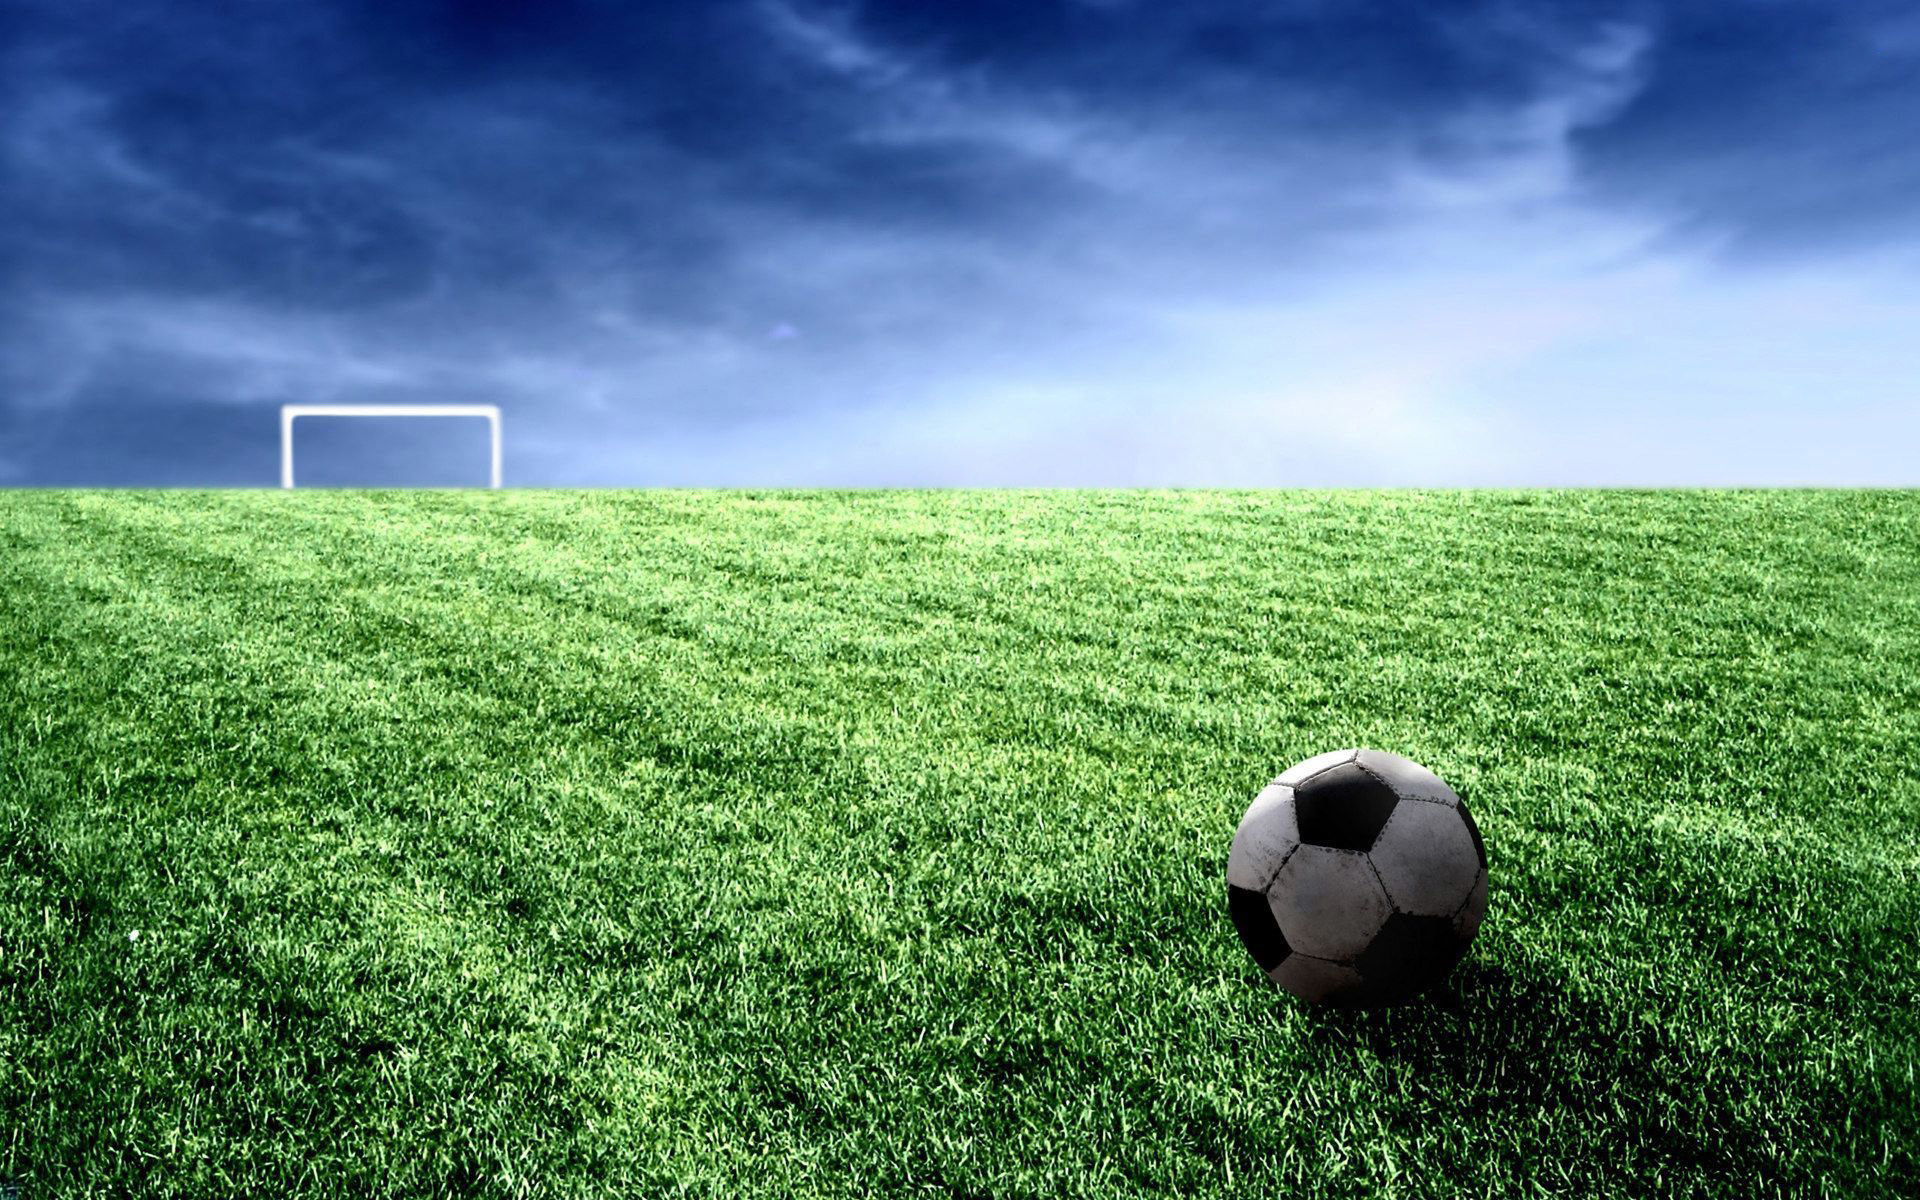 High Resolution Football Wallpapers Group × Wallpaper | HD Wallpapers |  Pinterest | Football wallpaper, Hd wallpaper and Wallpaper